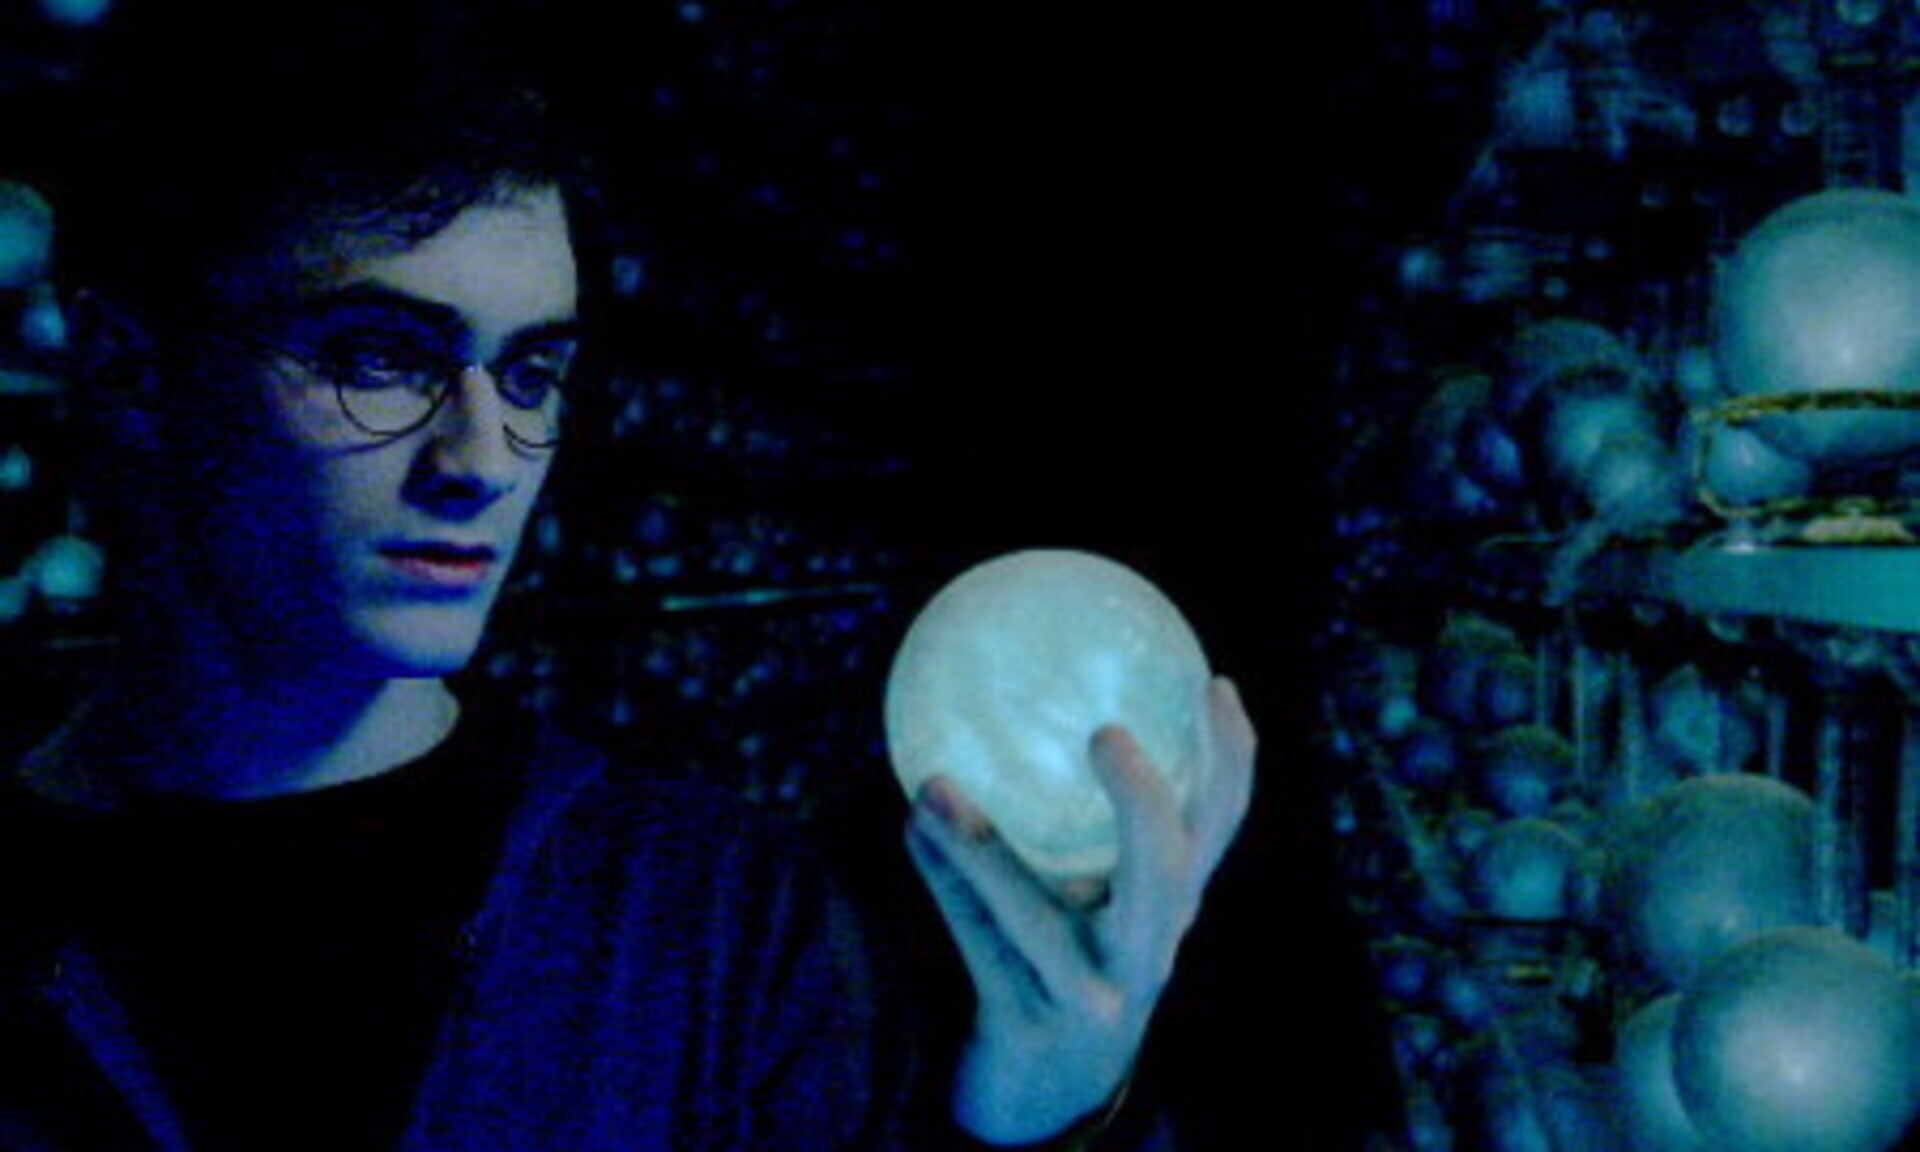 Harry Potter and the Order of the Phoenix - Image 40